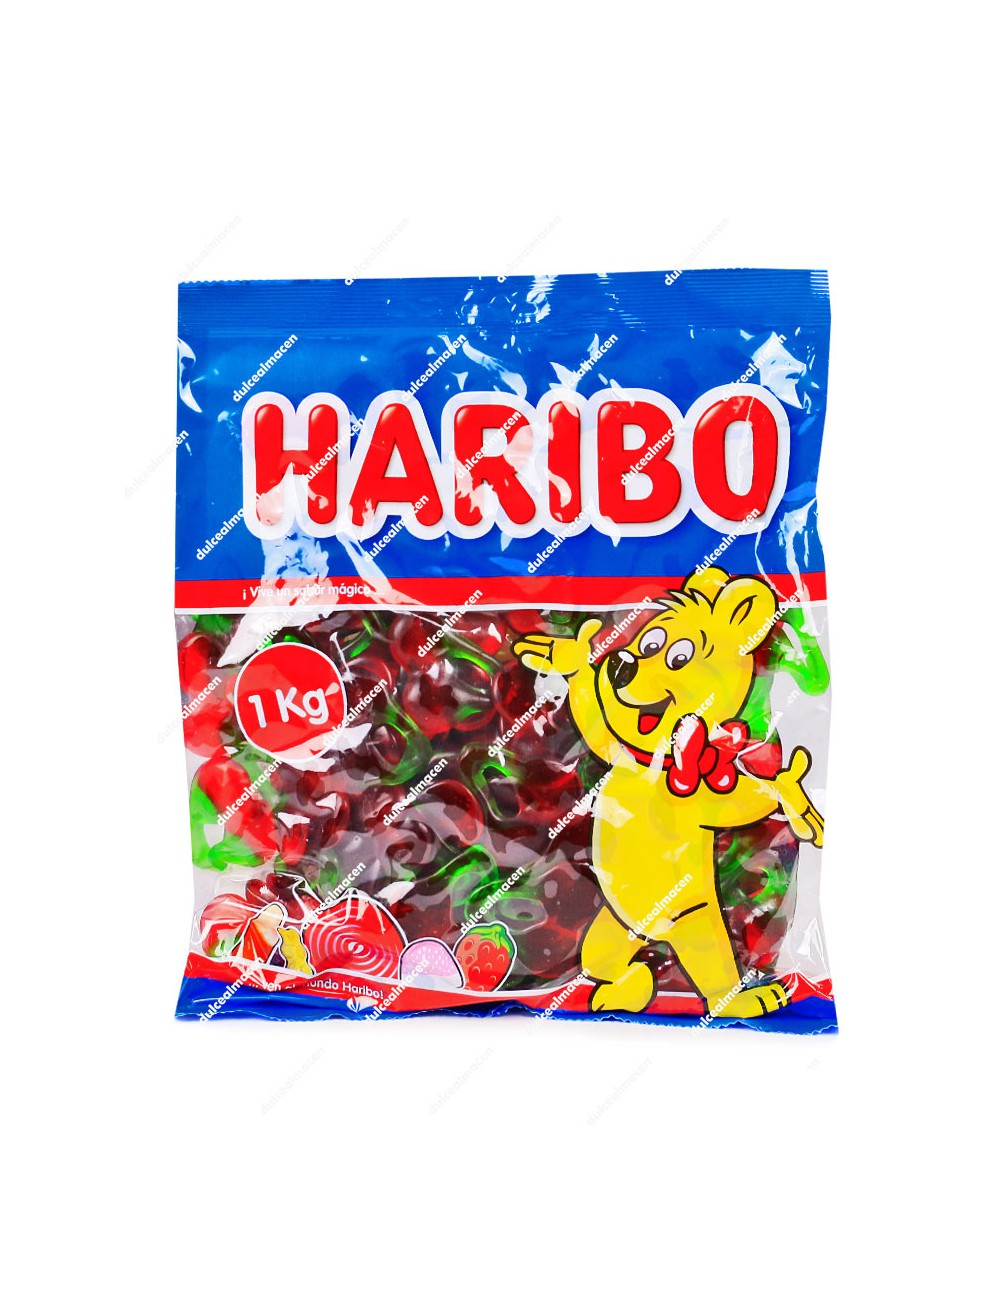 Haribo cerezas brillo